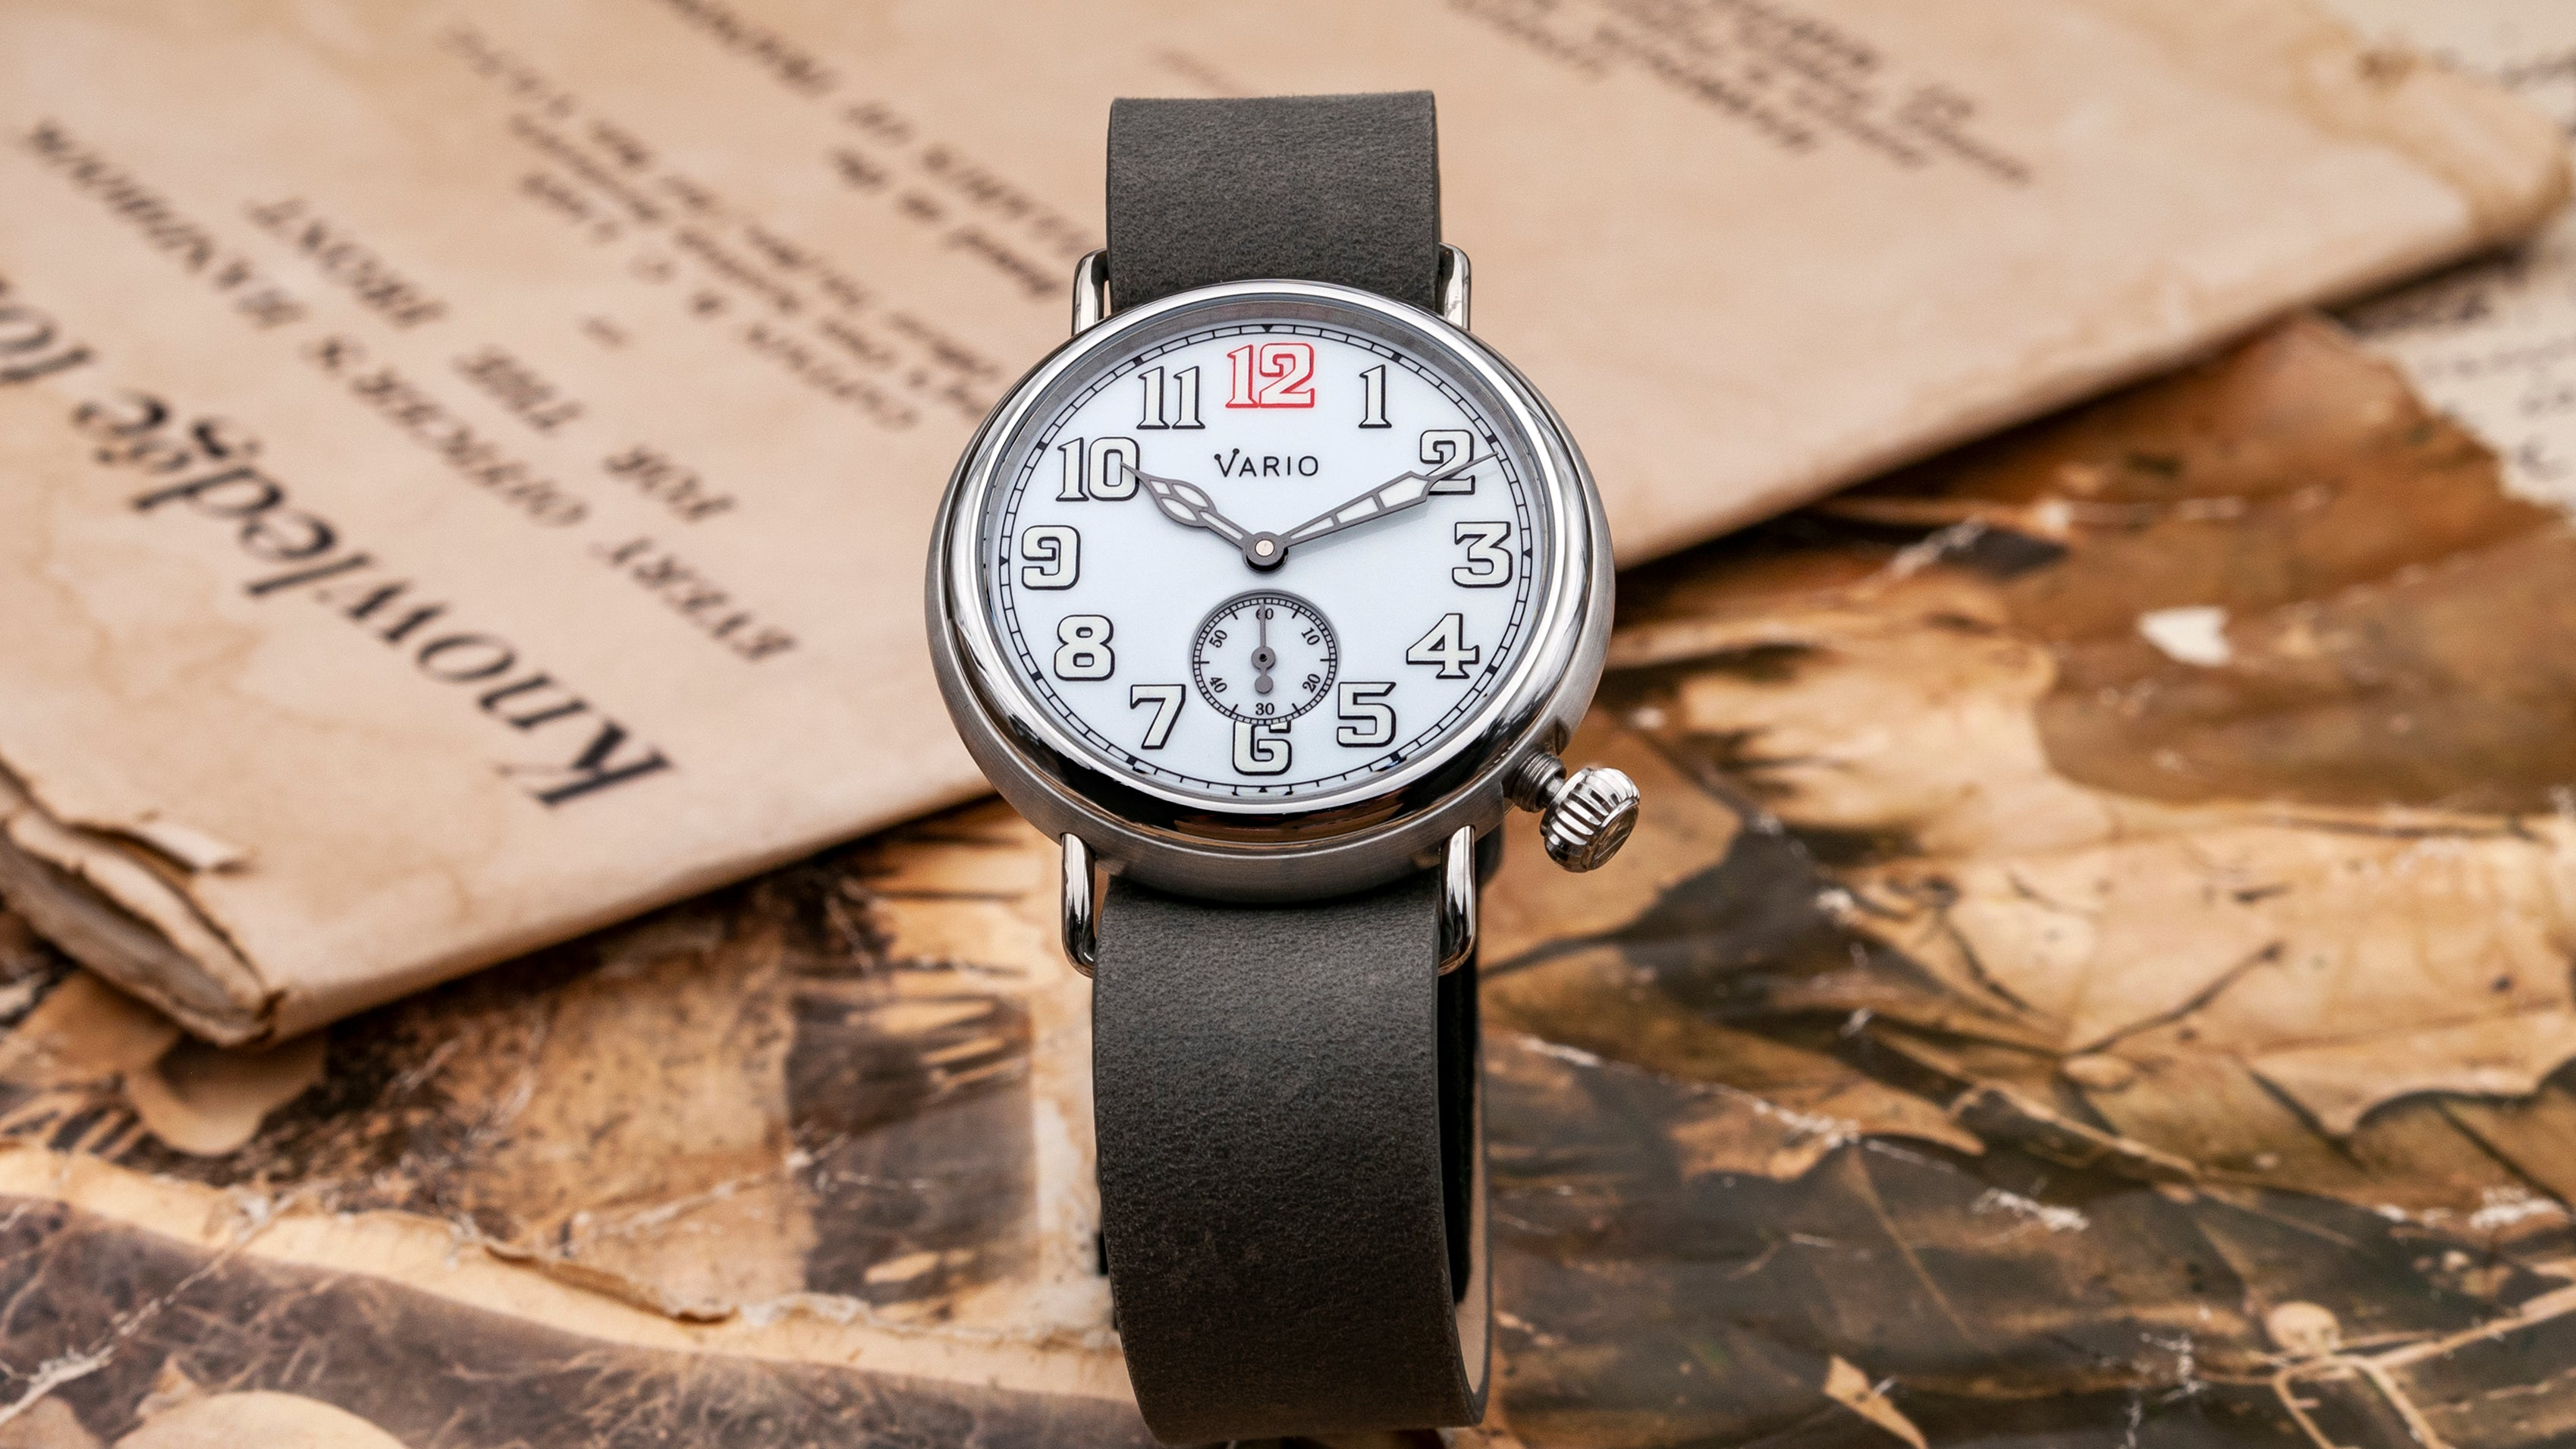 vario trench 1918 field watch vintage inspired watch